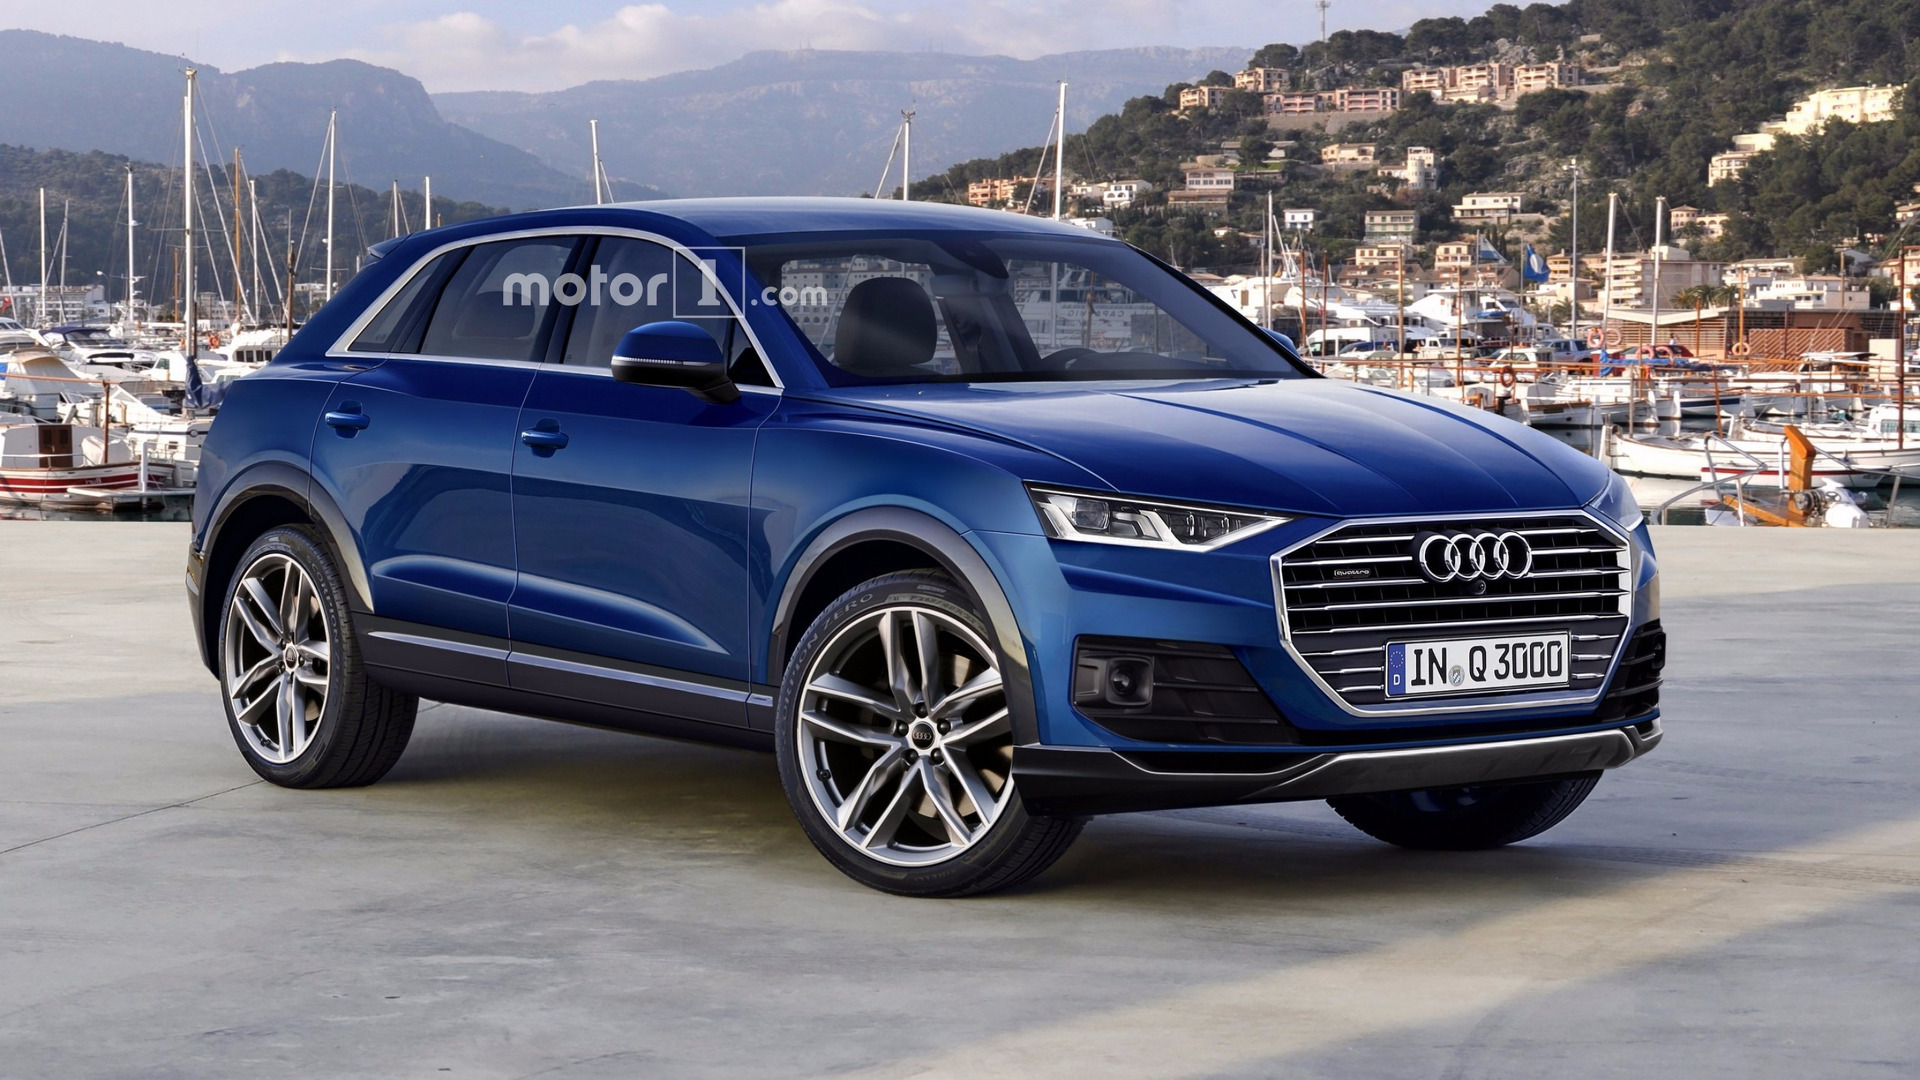 Audi Q EV Allegedly In The Works With EGolf Hardware - Audi q3 hybrid